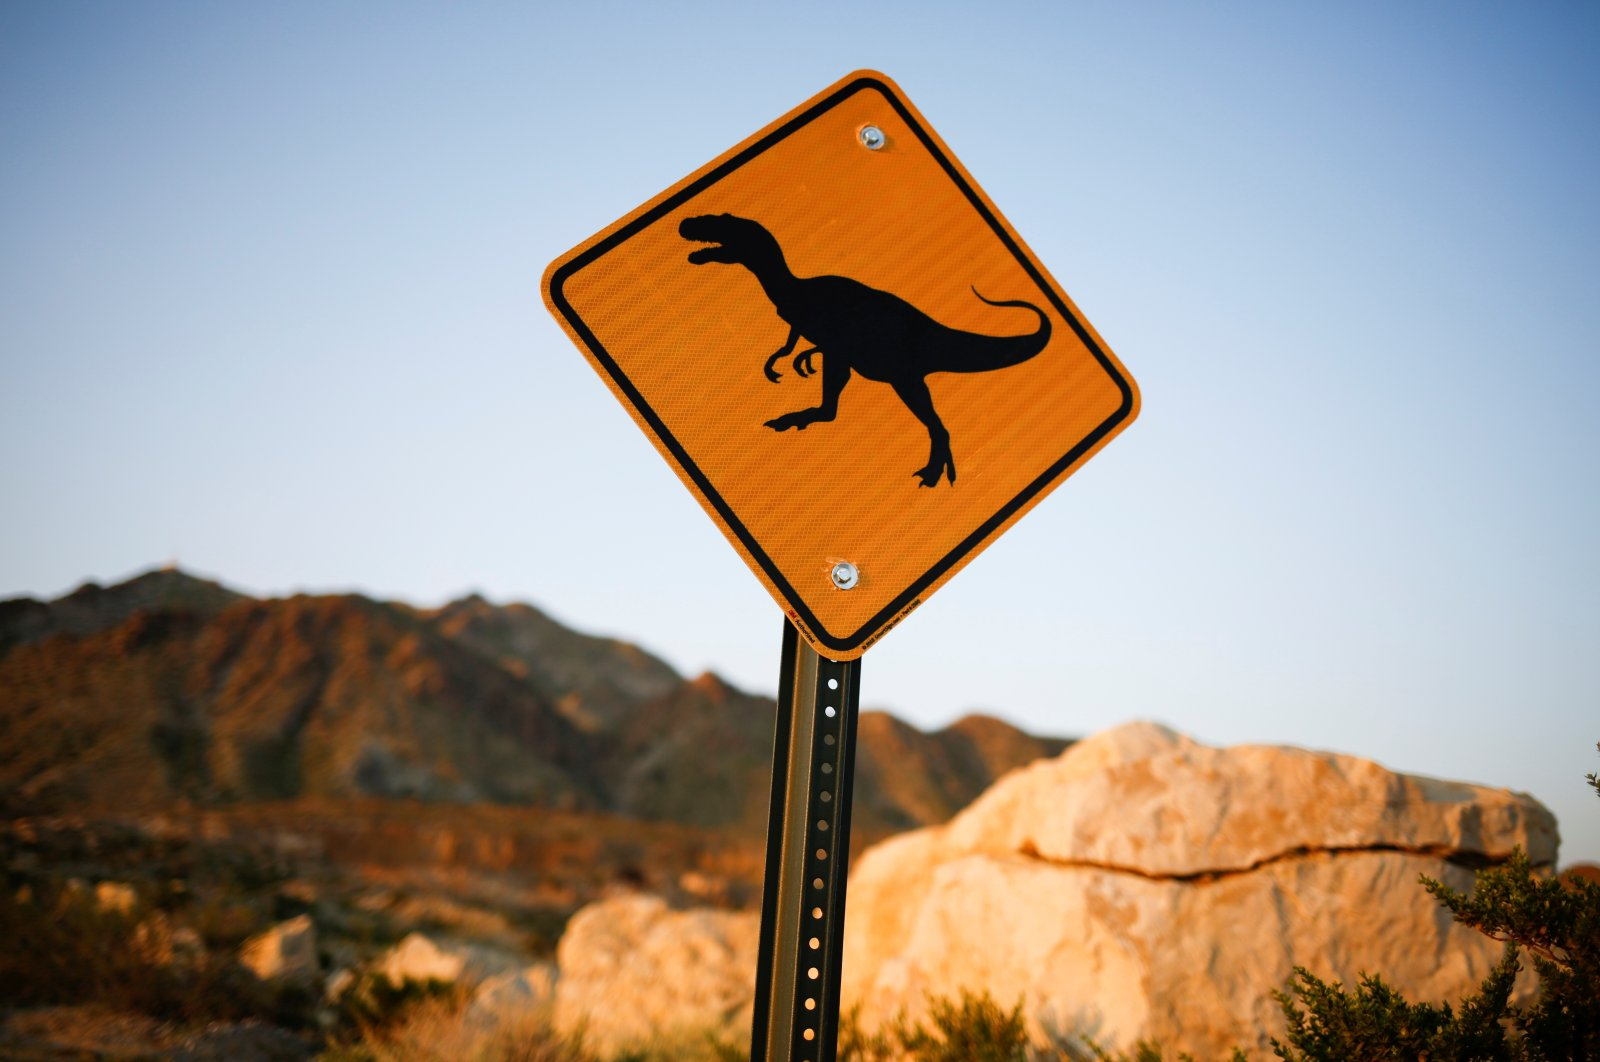 A sign with the image of a dinosaur is seen in the desert at Sunland Park, New Mexico, U.S., Sept. 9, 2021. (Reuters Photo)